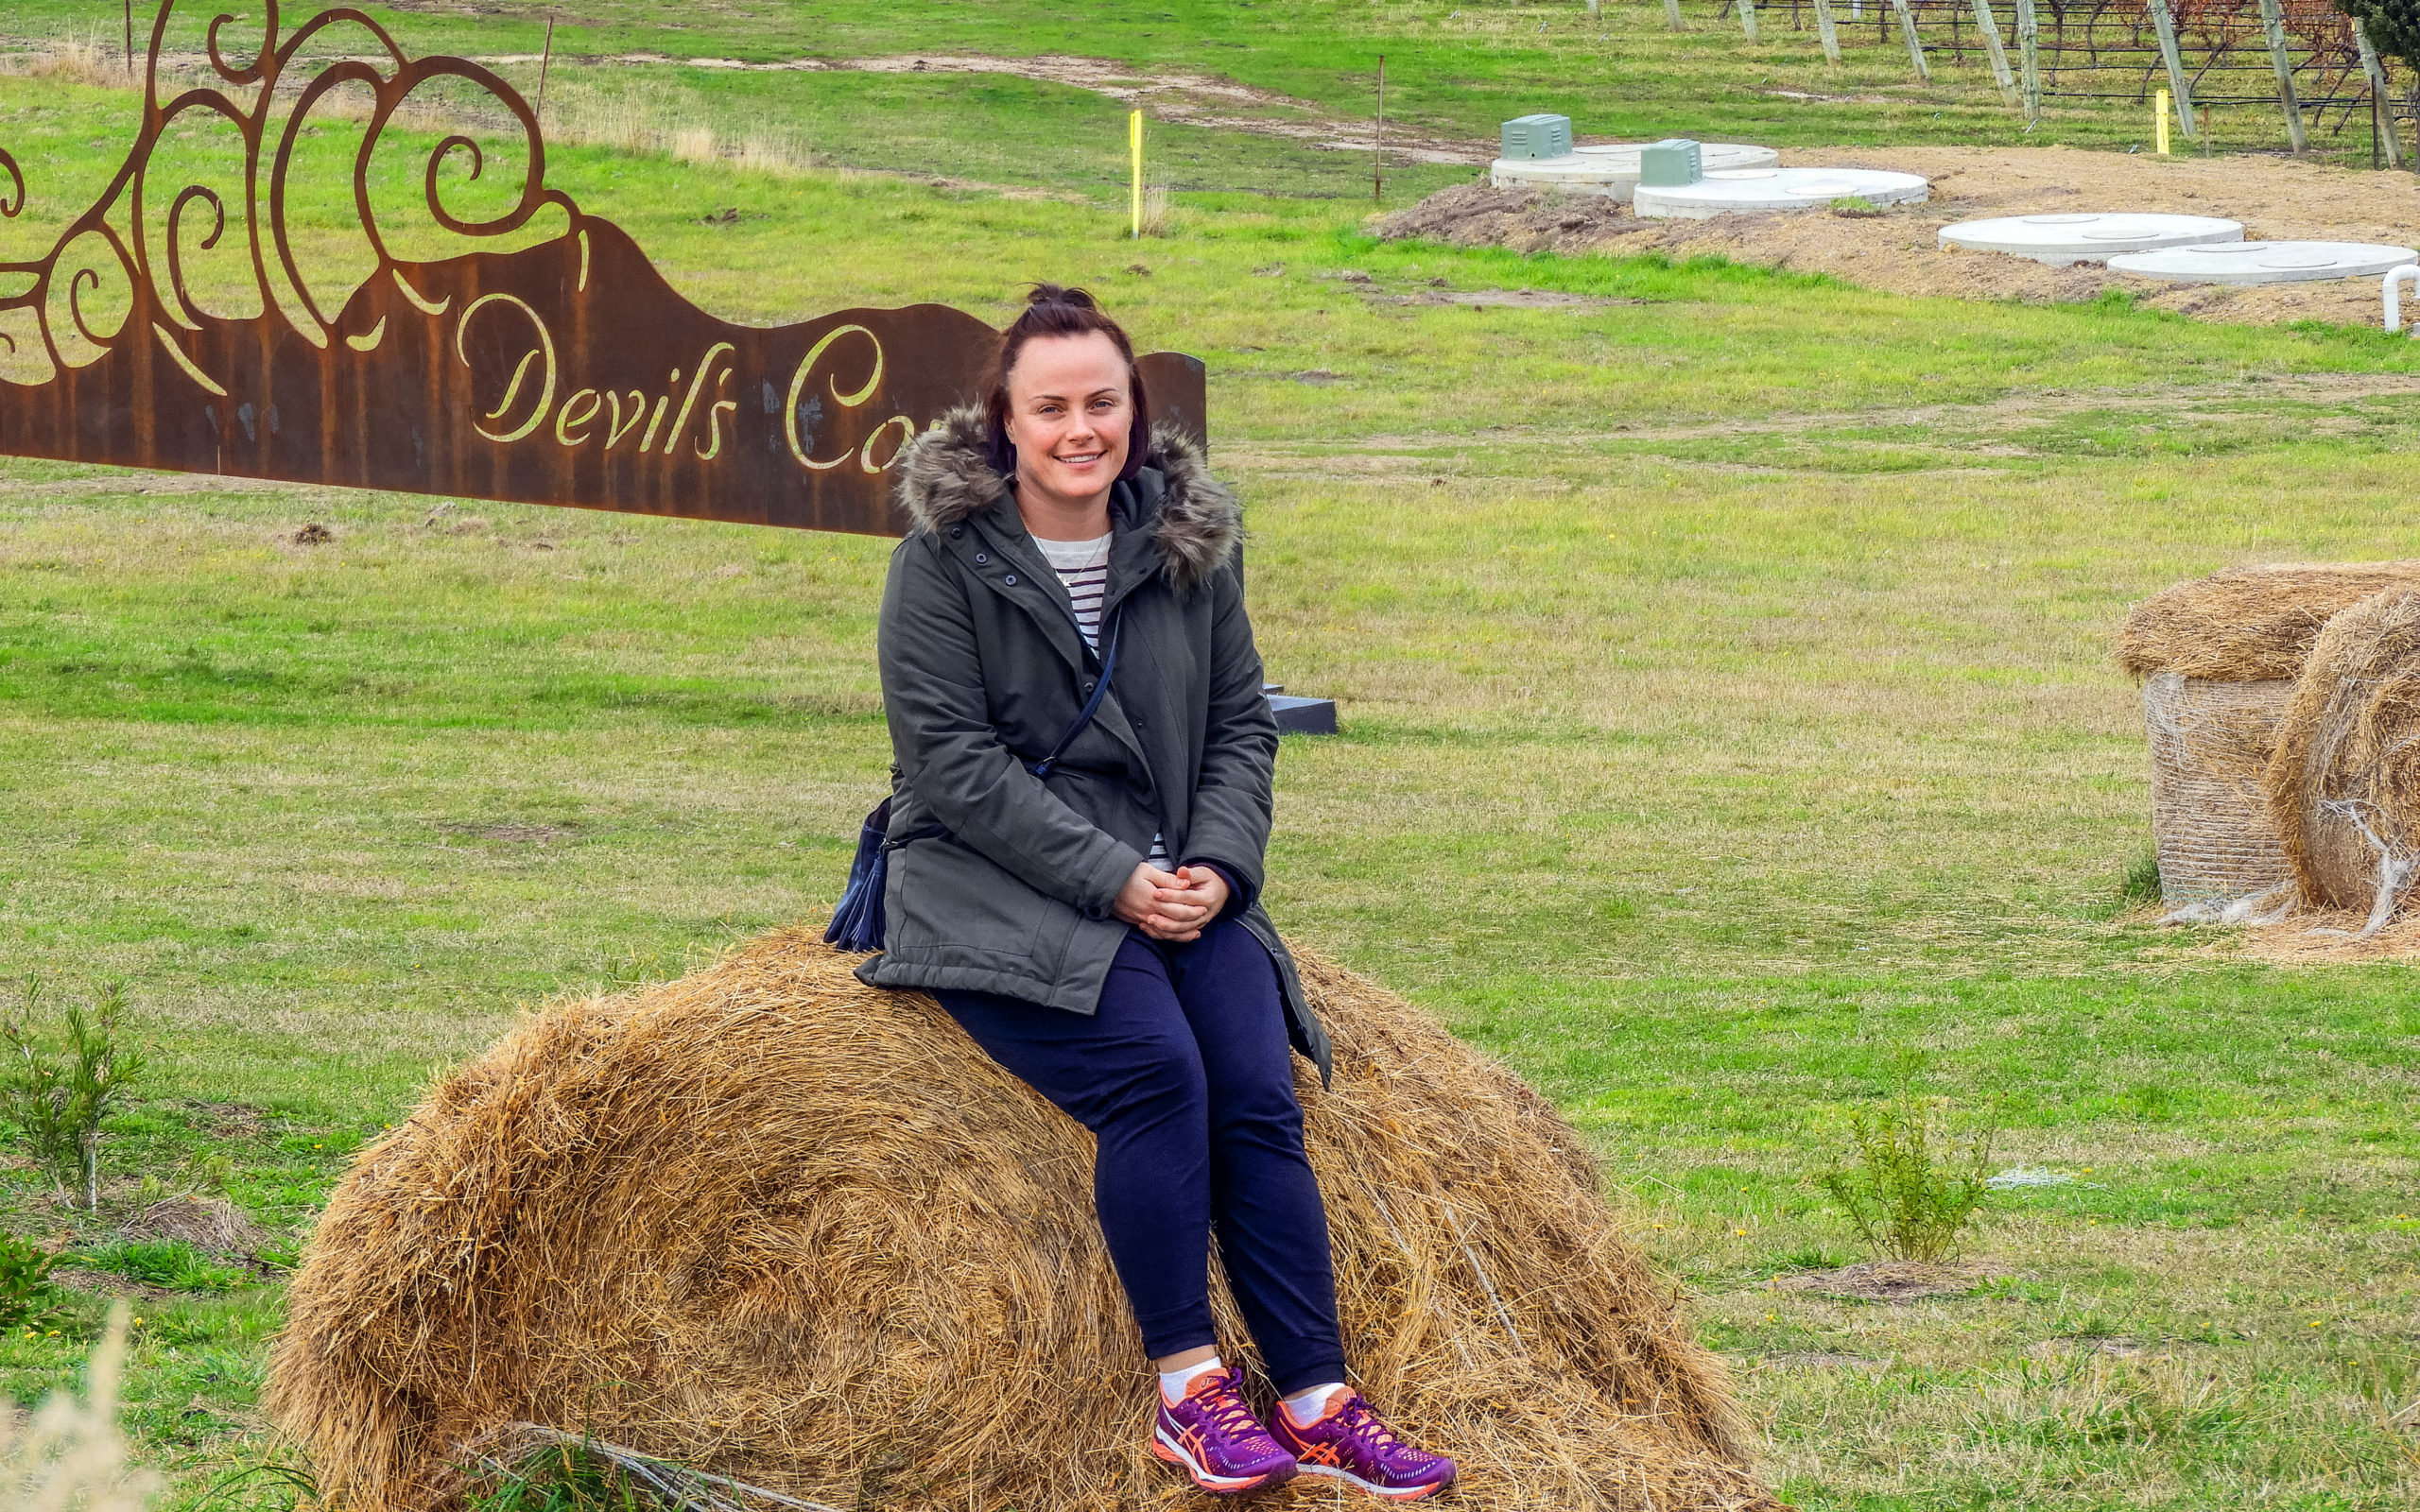 Louise Connolly at Devil's Corner, Tasmania